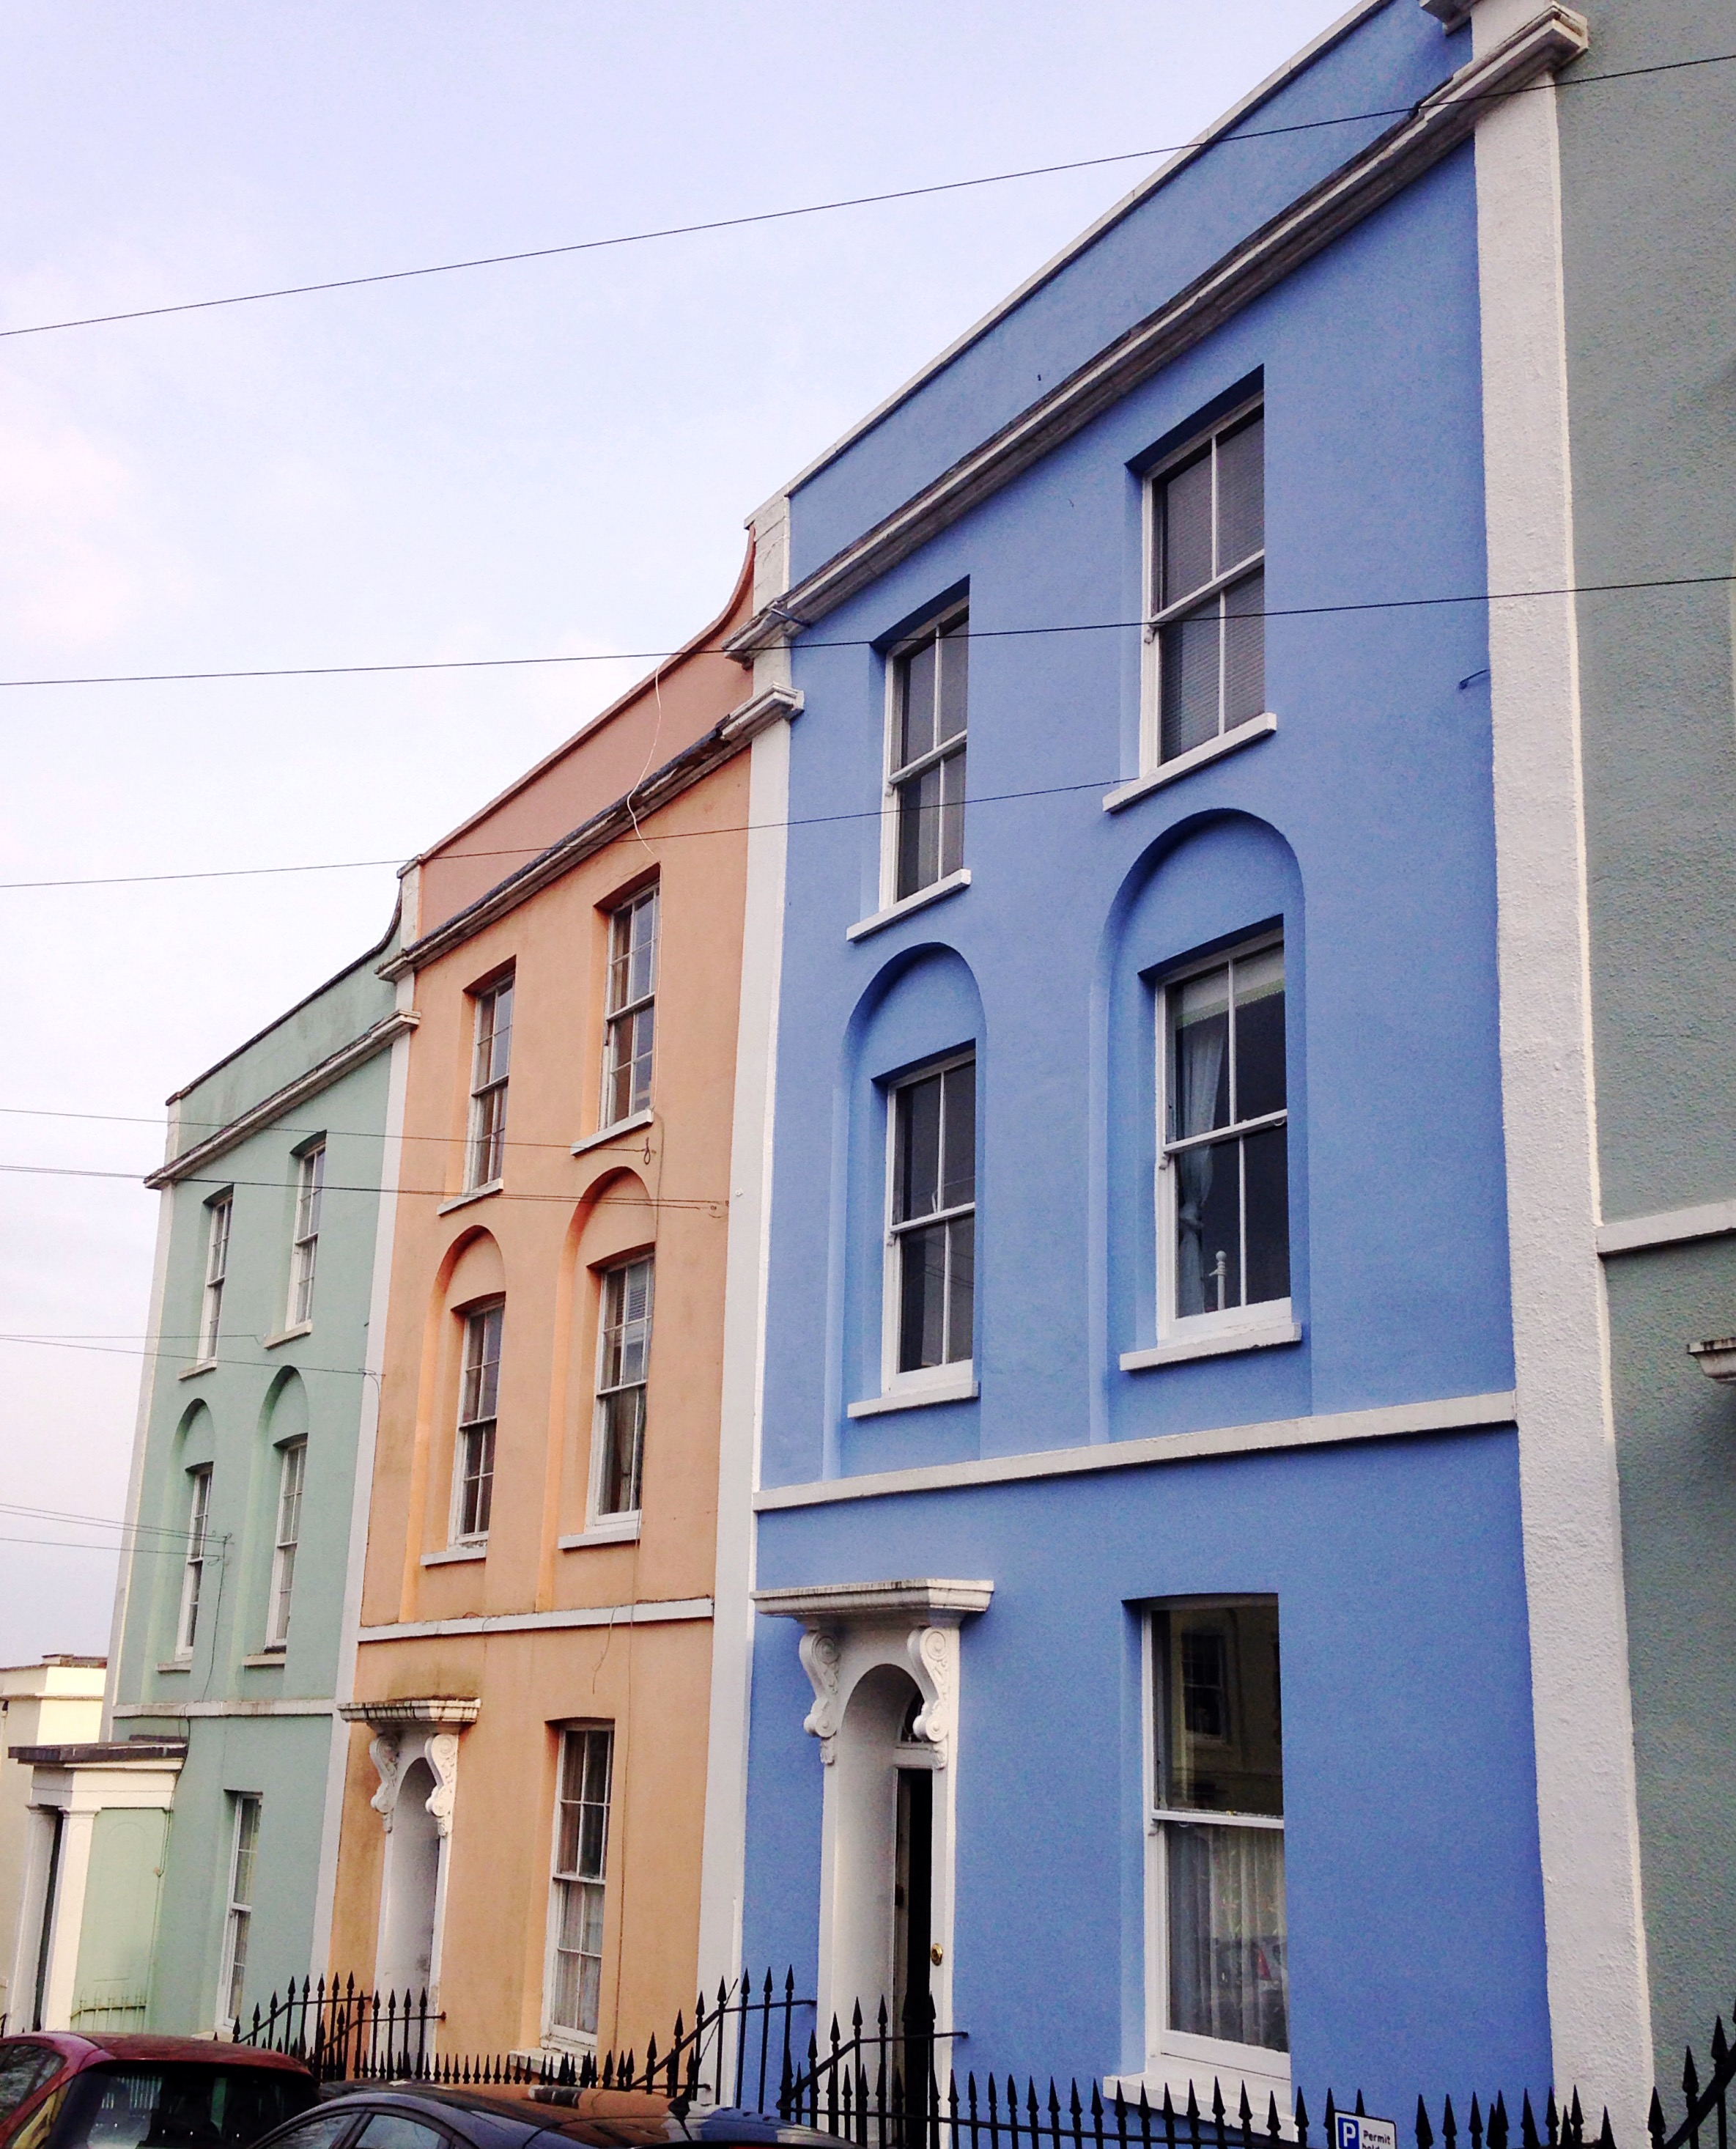 Mint green, coral and blue row of painted houses in Kingsdown Brisol